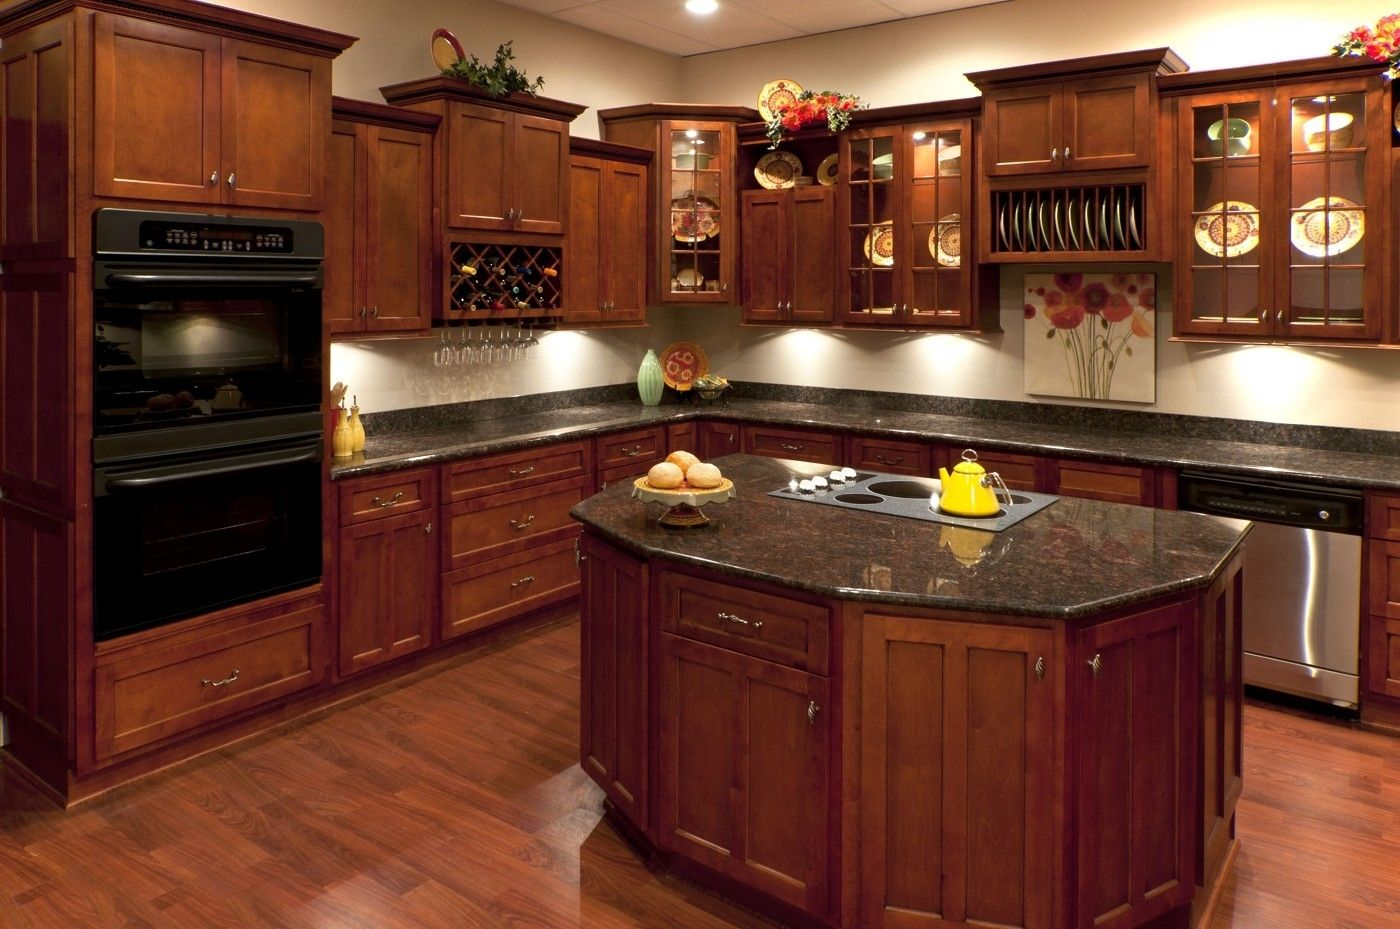 Image result for dark granite countertops | Cherry wood ... on Maple Kitchen Cabinets With Black Granite Countertops  id=49568